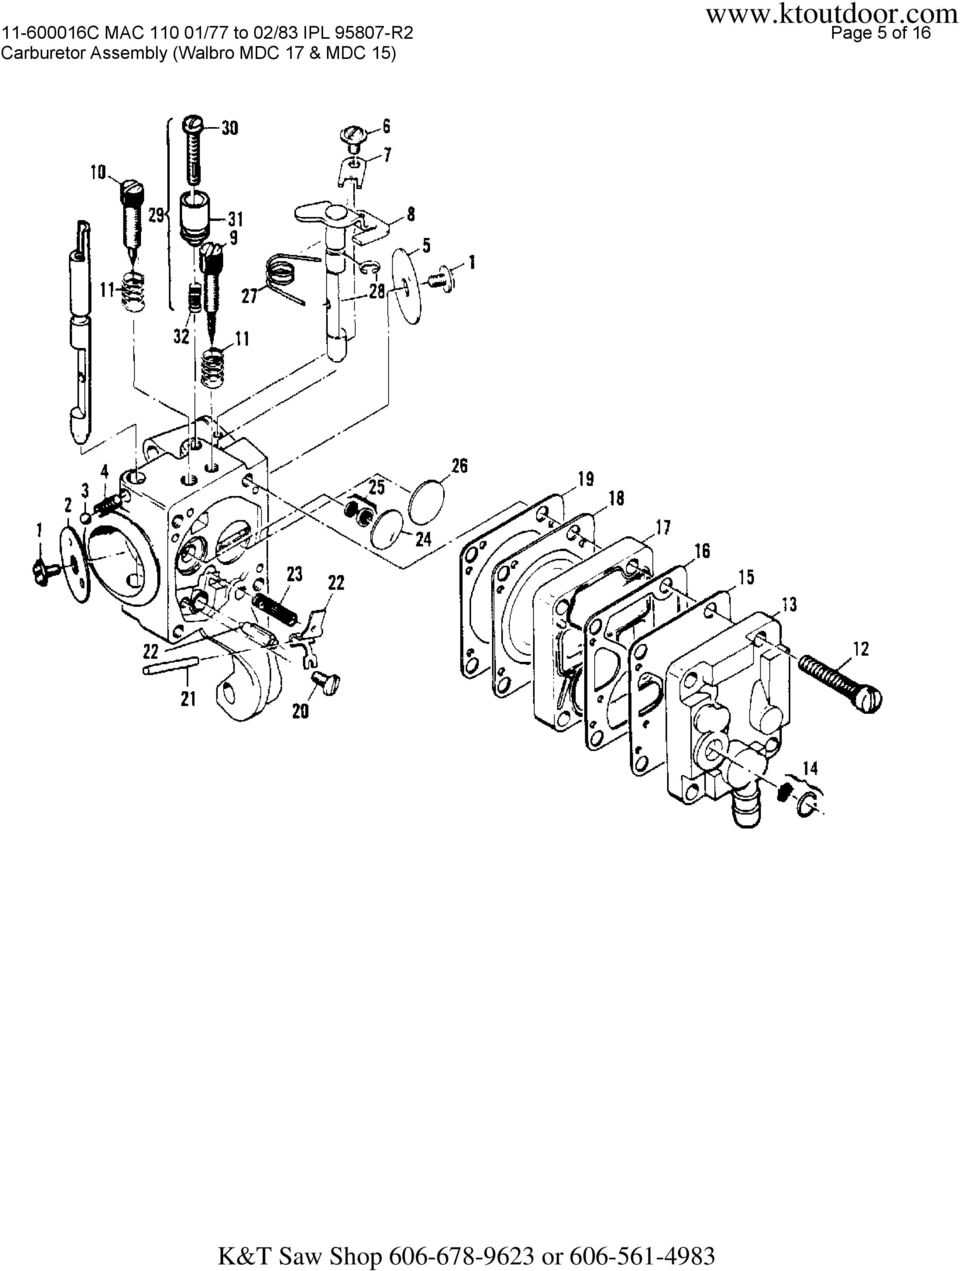 Page 5 of 16 Carburetor